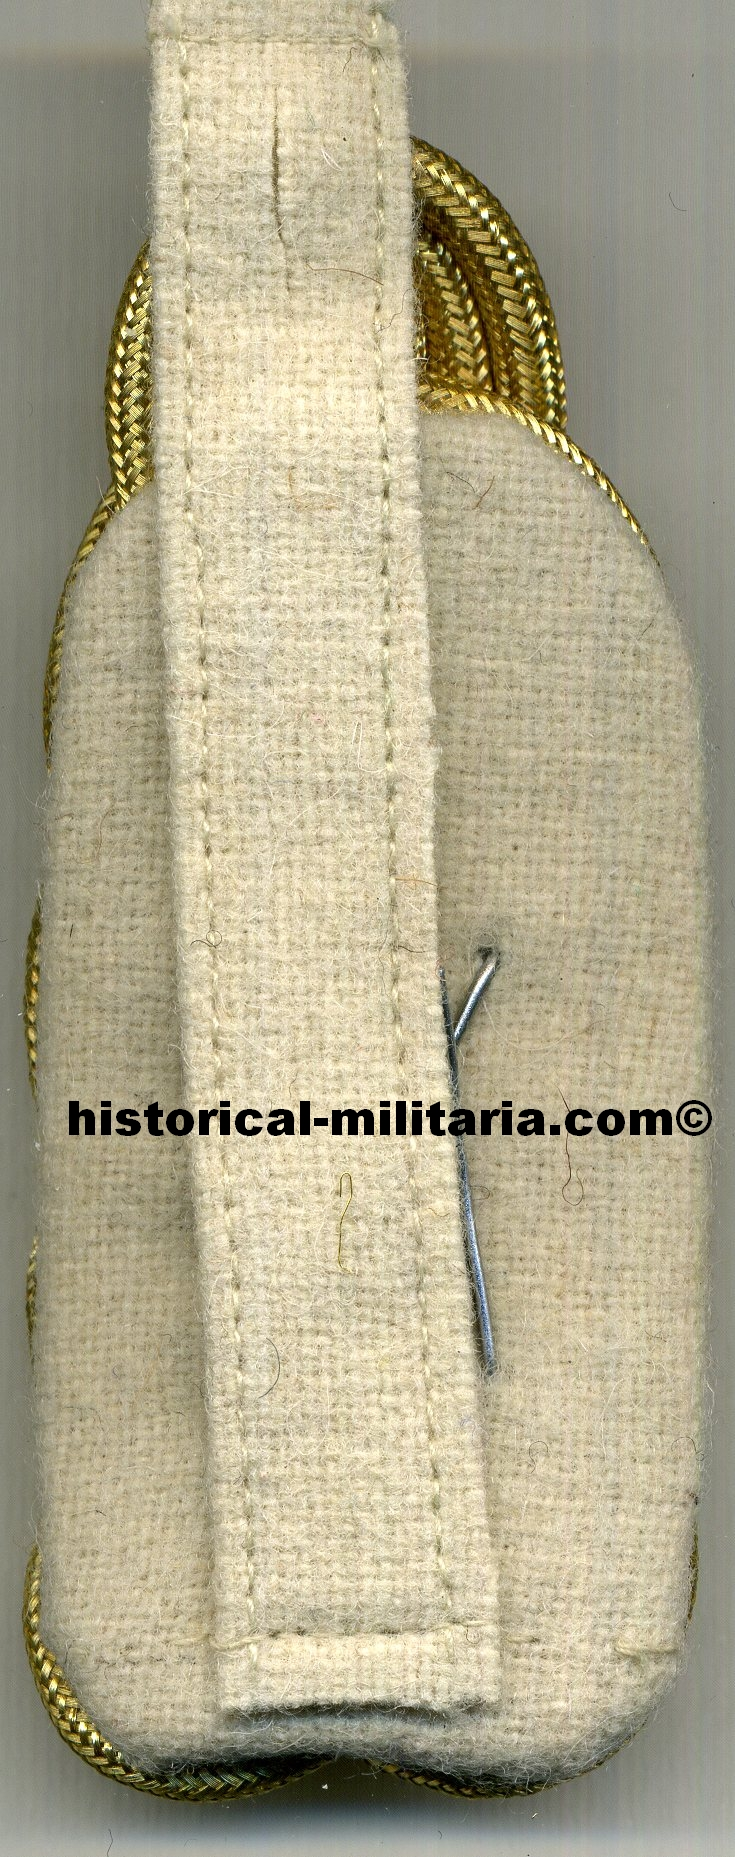 LUFTWAFFE Generalfeldmarschall General Field Marshal Schulterklappen set slip-on shoulder boards 2nd pattern batons starting 1943 on off-white with manually aged batons and aged looking collar tabs - Feldmaresciallo Generale